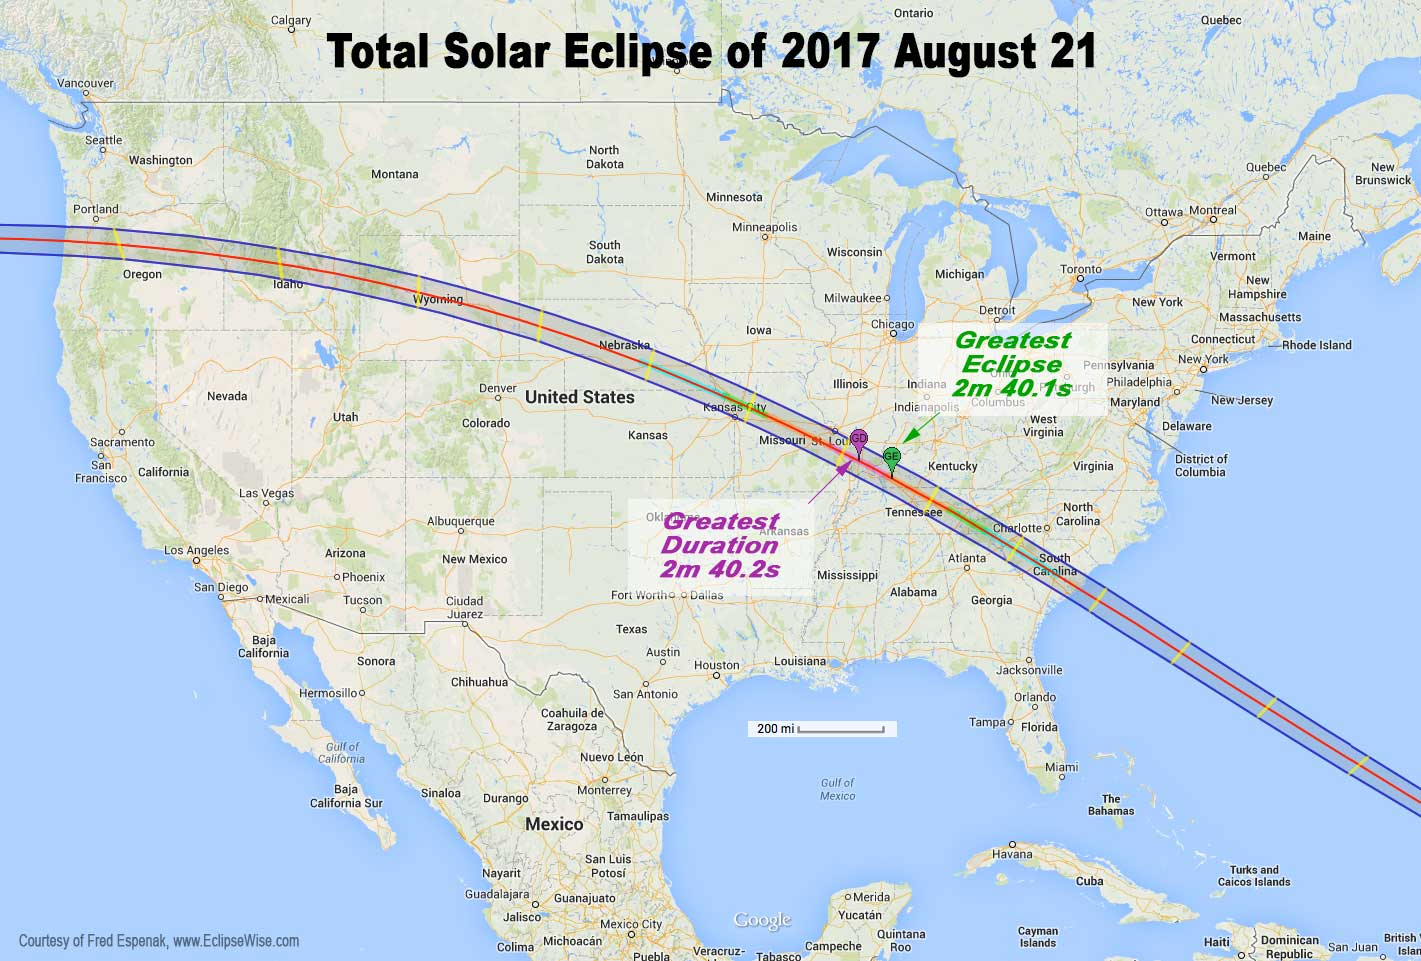 2017 Total Solar Eclipse Map